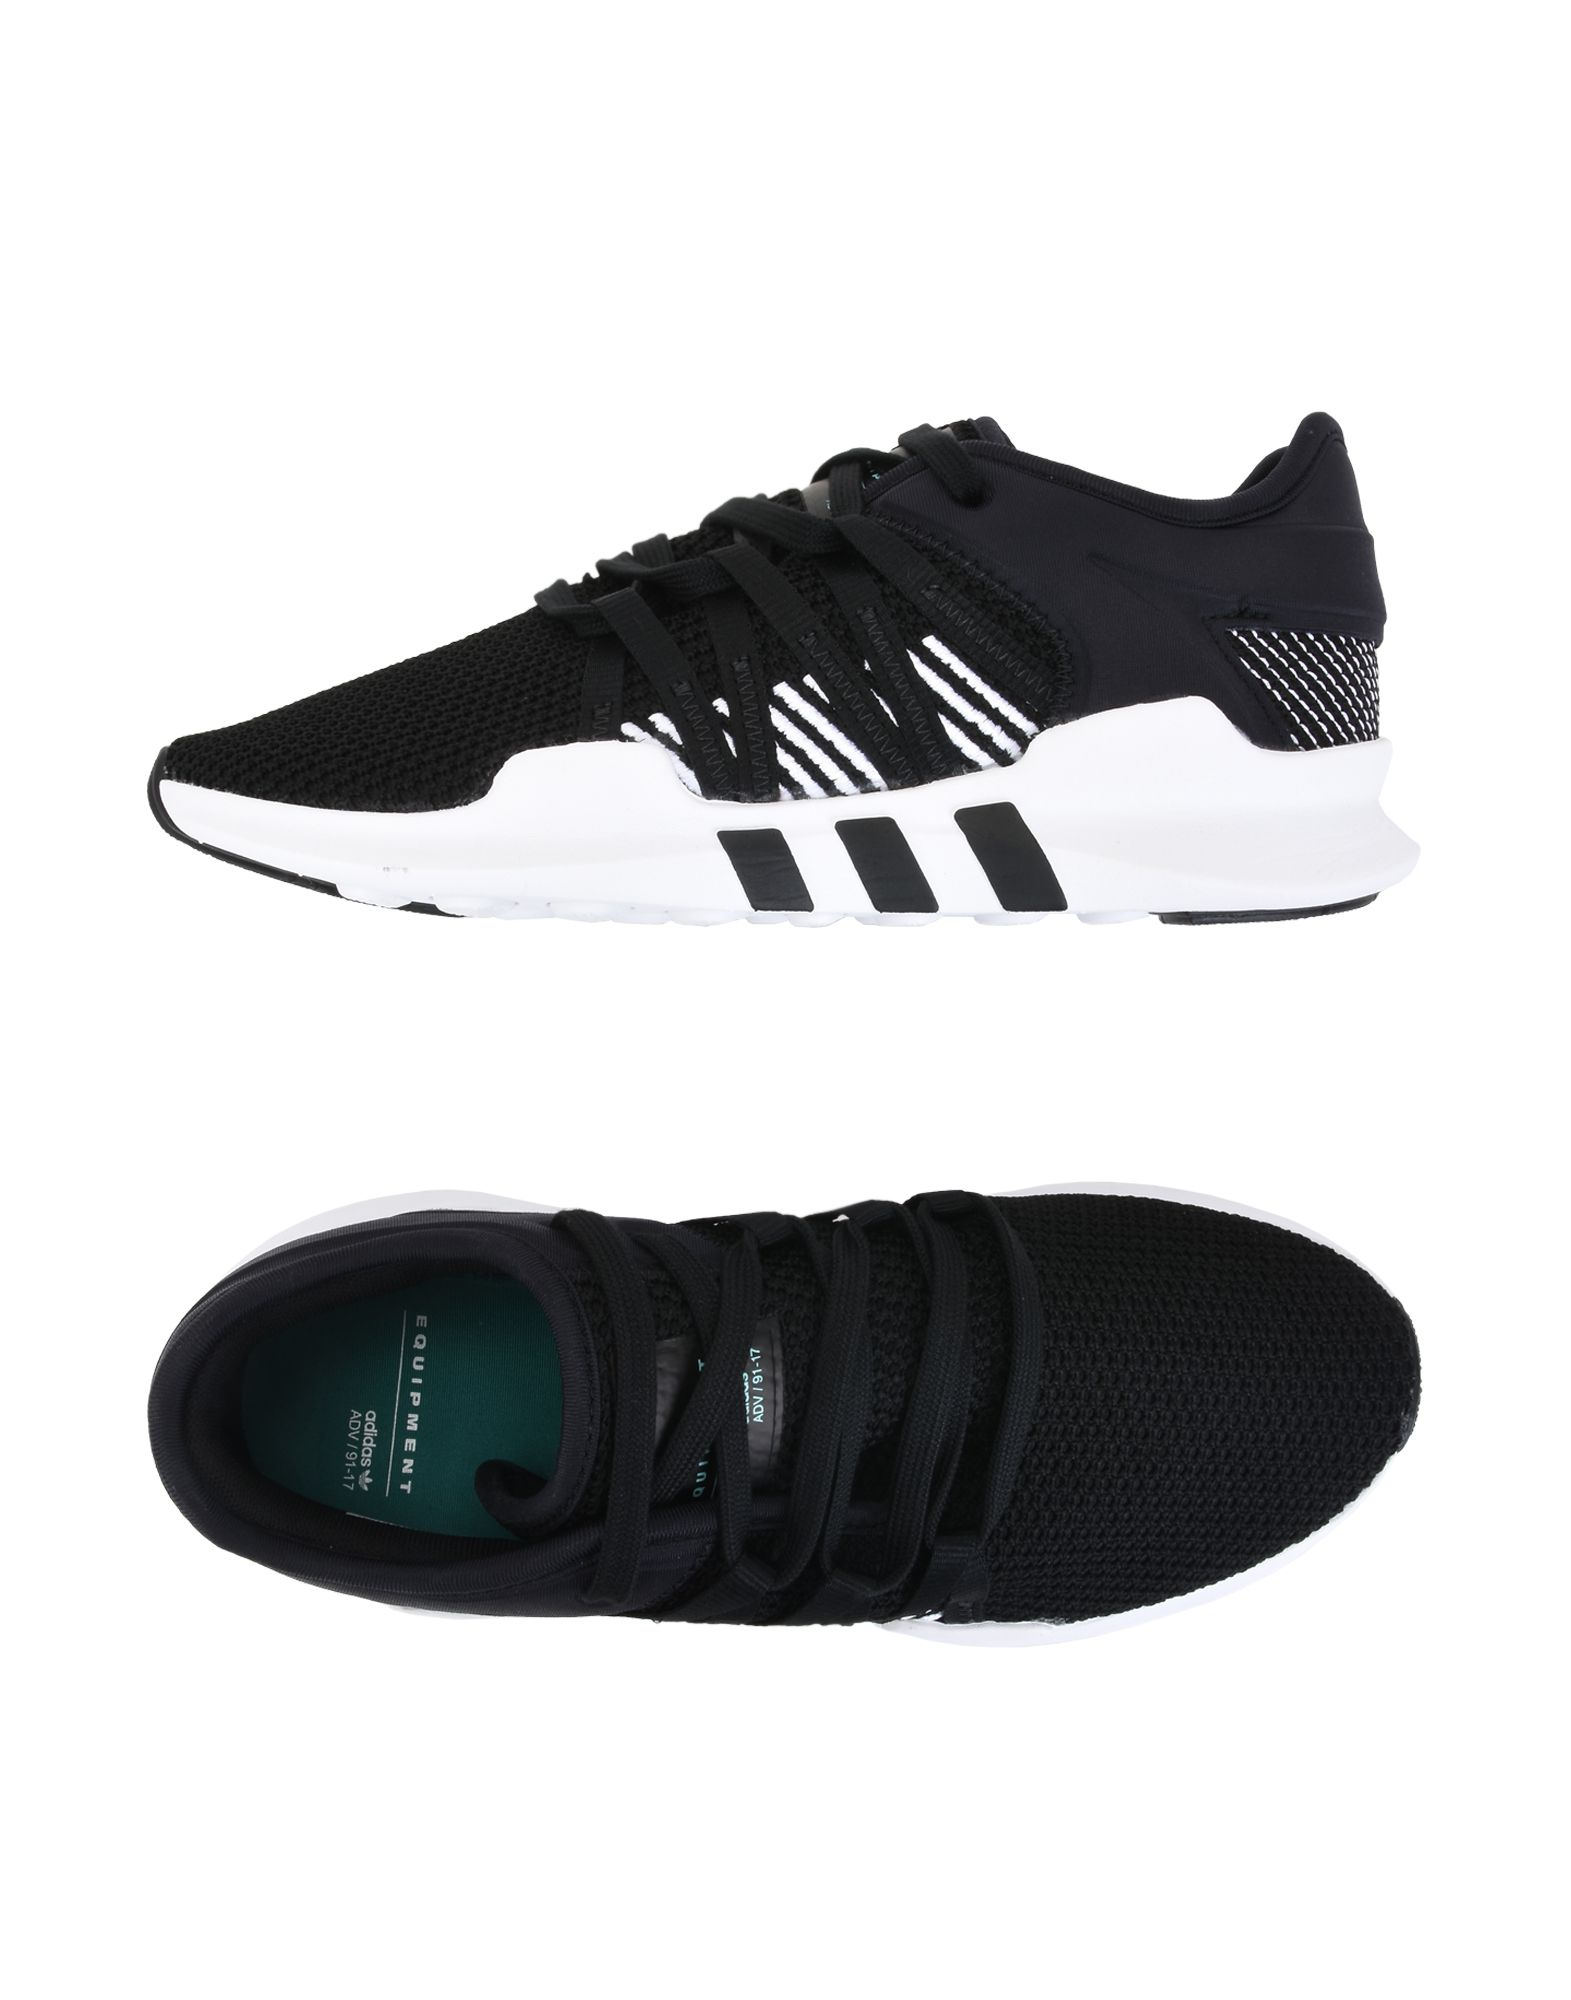 Sneakers Sneakers Sneakers Adidas Originals Eqt Racing Adv W - Donna - 11334447FQ 804021